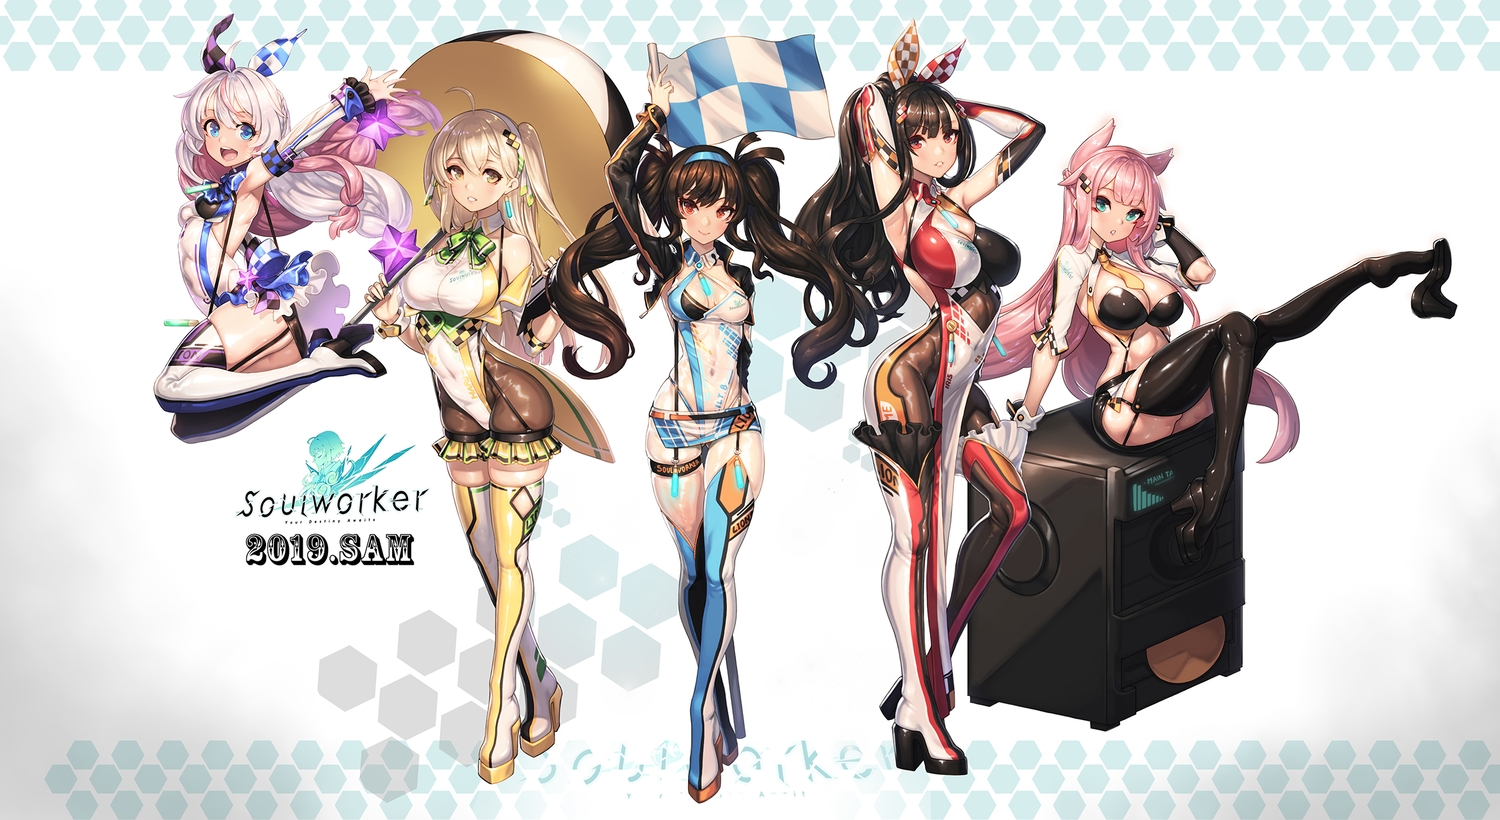 animal_ears aqua_eyes blonde_hair boots breasts brown_hair chii_aruel chinese_clothes chinese_dress cleavage ecell garter_belt green_eyes group headband iris_yuma lily_bloomerchen logo long_hair pink_hair red_eyes see_through skintight soul_worker stella_unibell tagme_(character) thighhighs twintails umbrella white_hair yellow_eyes zettai_ryouiki